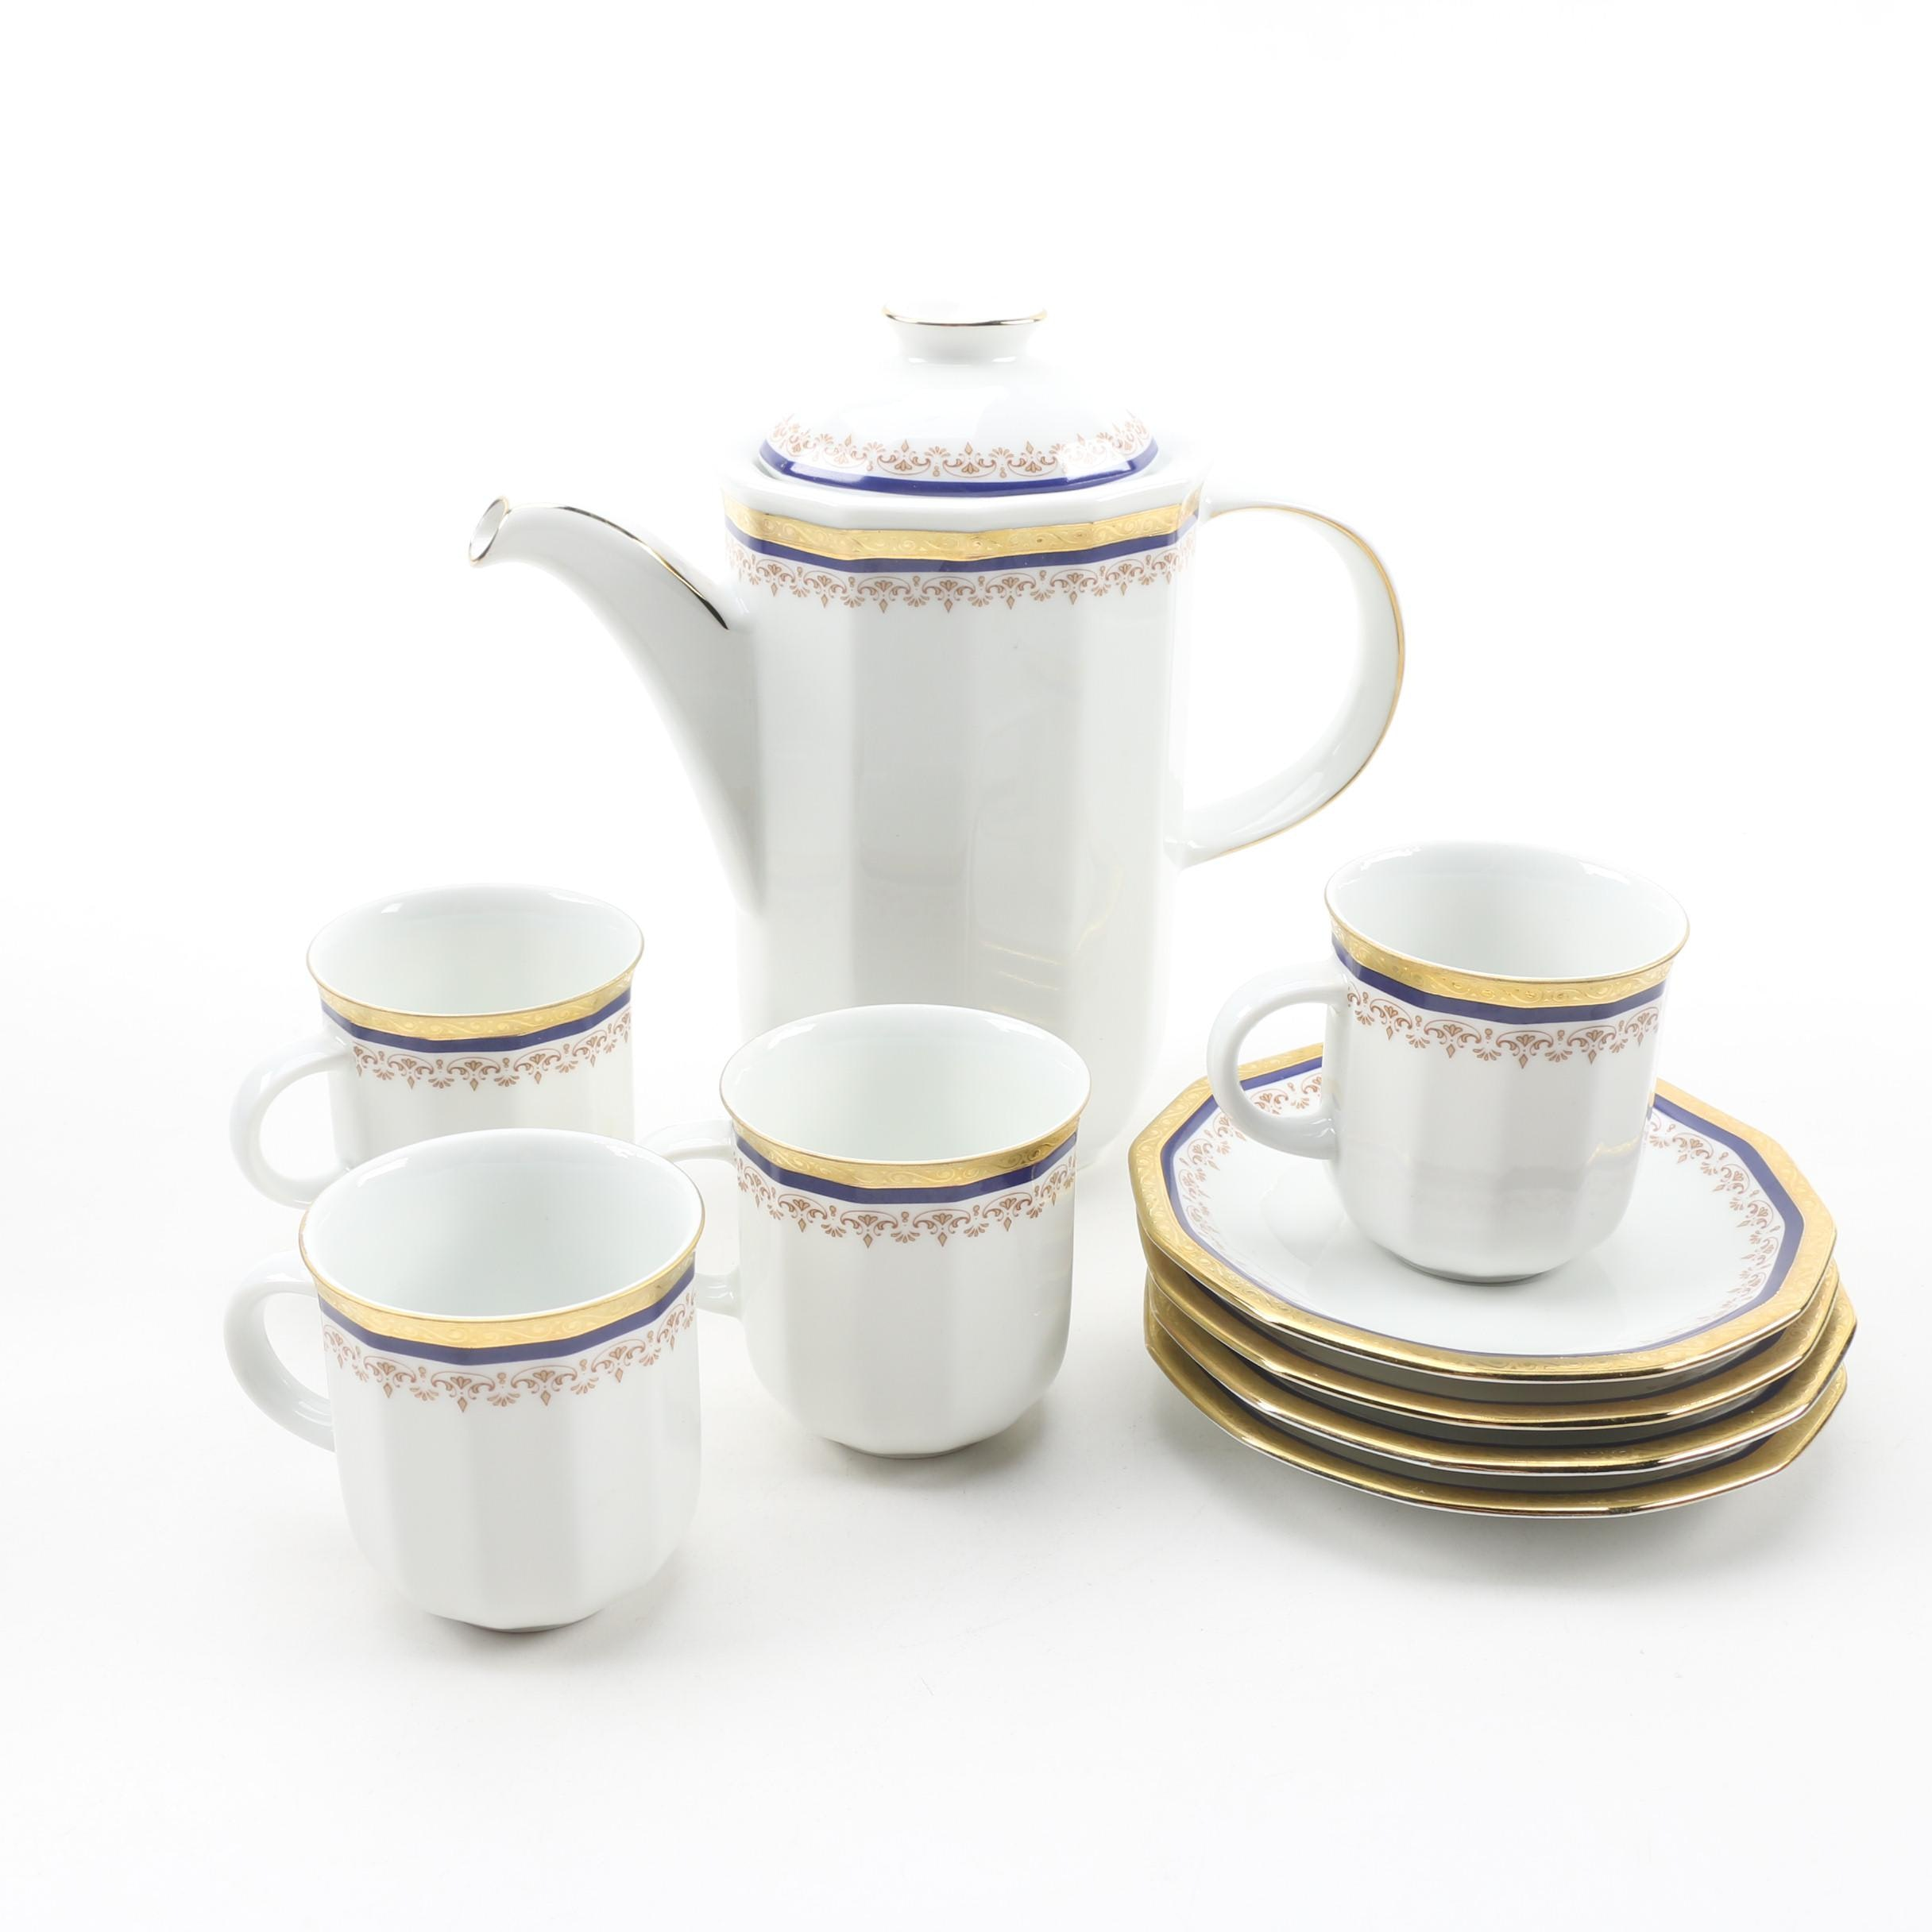 Tirschenreuth German Porcelain Demitasse Set